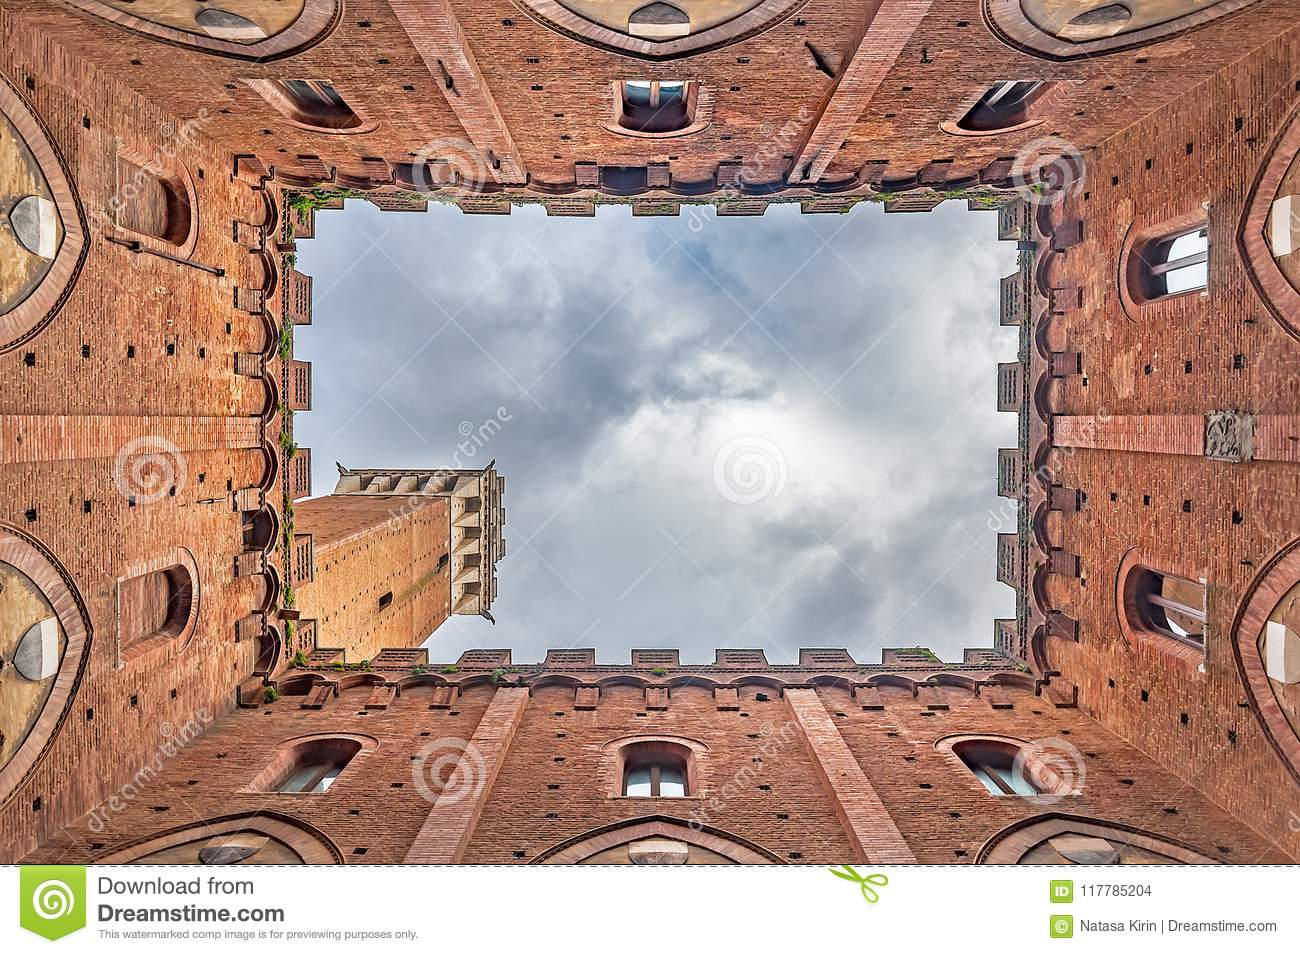 Torre del Mangia in Siena, Italy, seen from the inside of Palazzo Pubblico